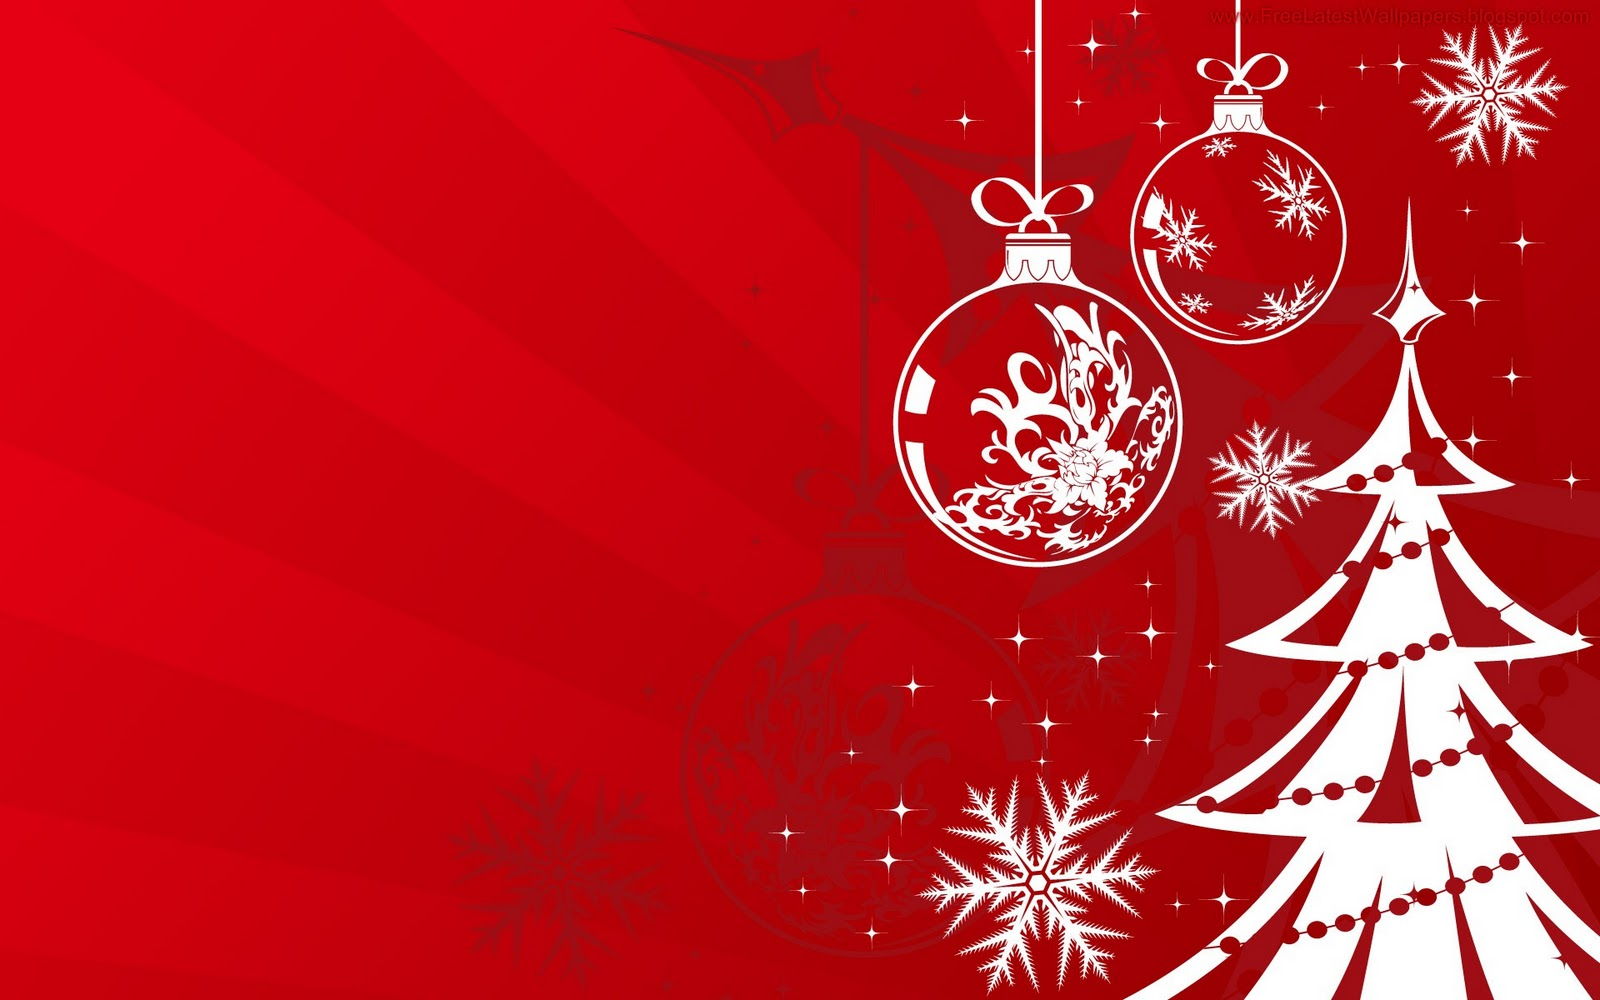 christmas card backgrounds - photo #28